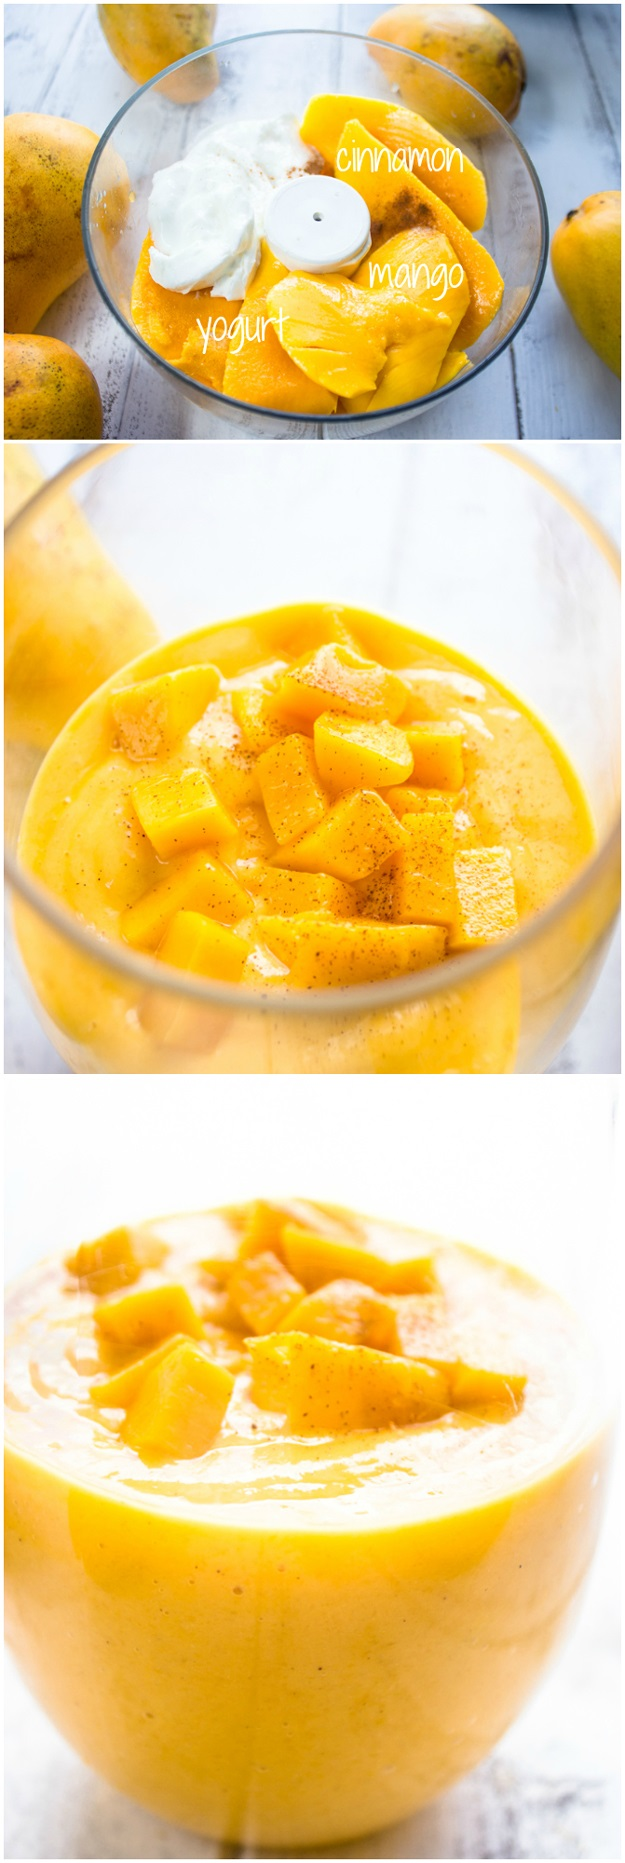 smoothie mango y yogur griego